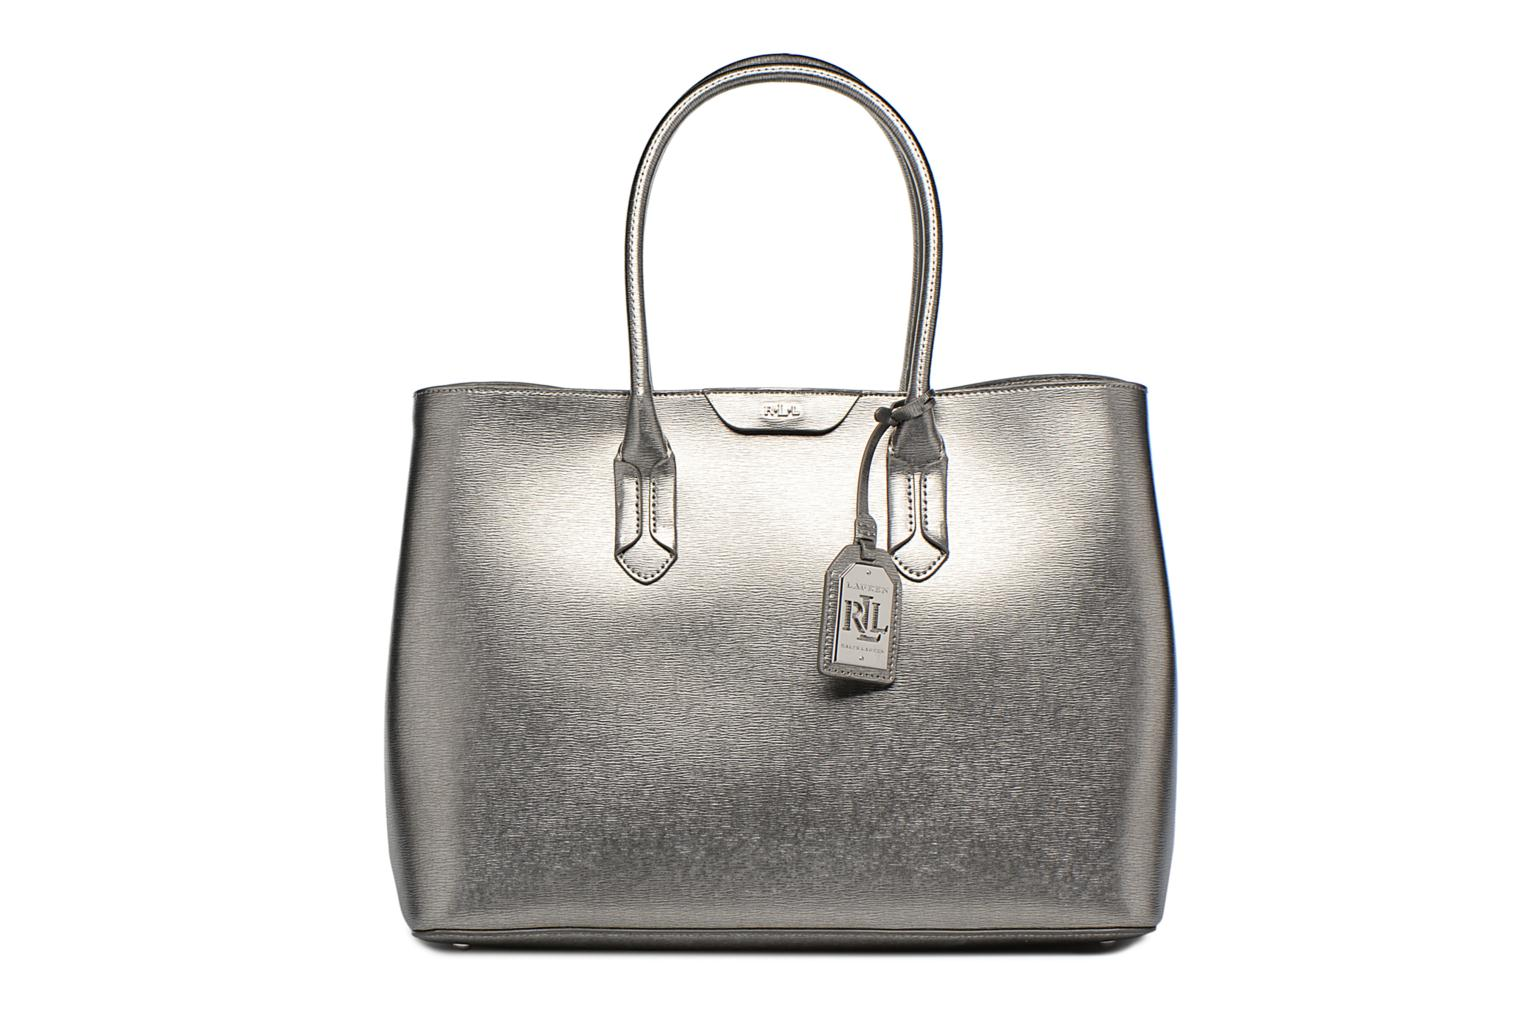 City Tote Tote Embossed Leather Silver